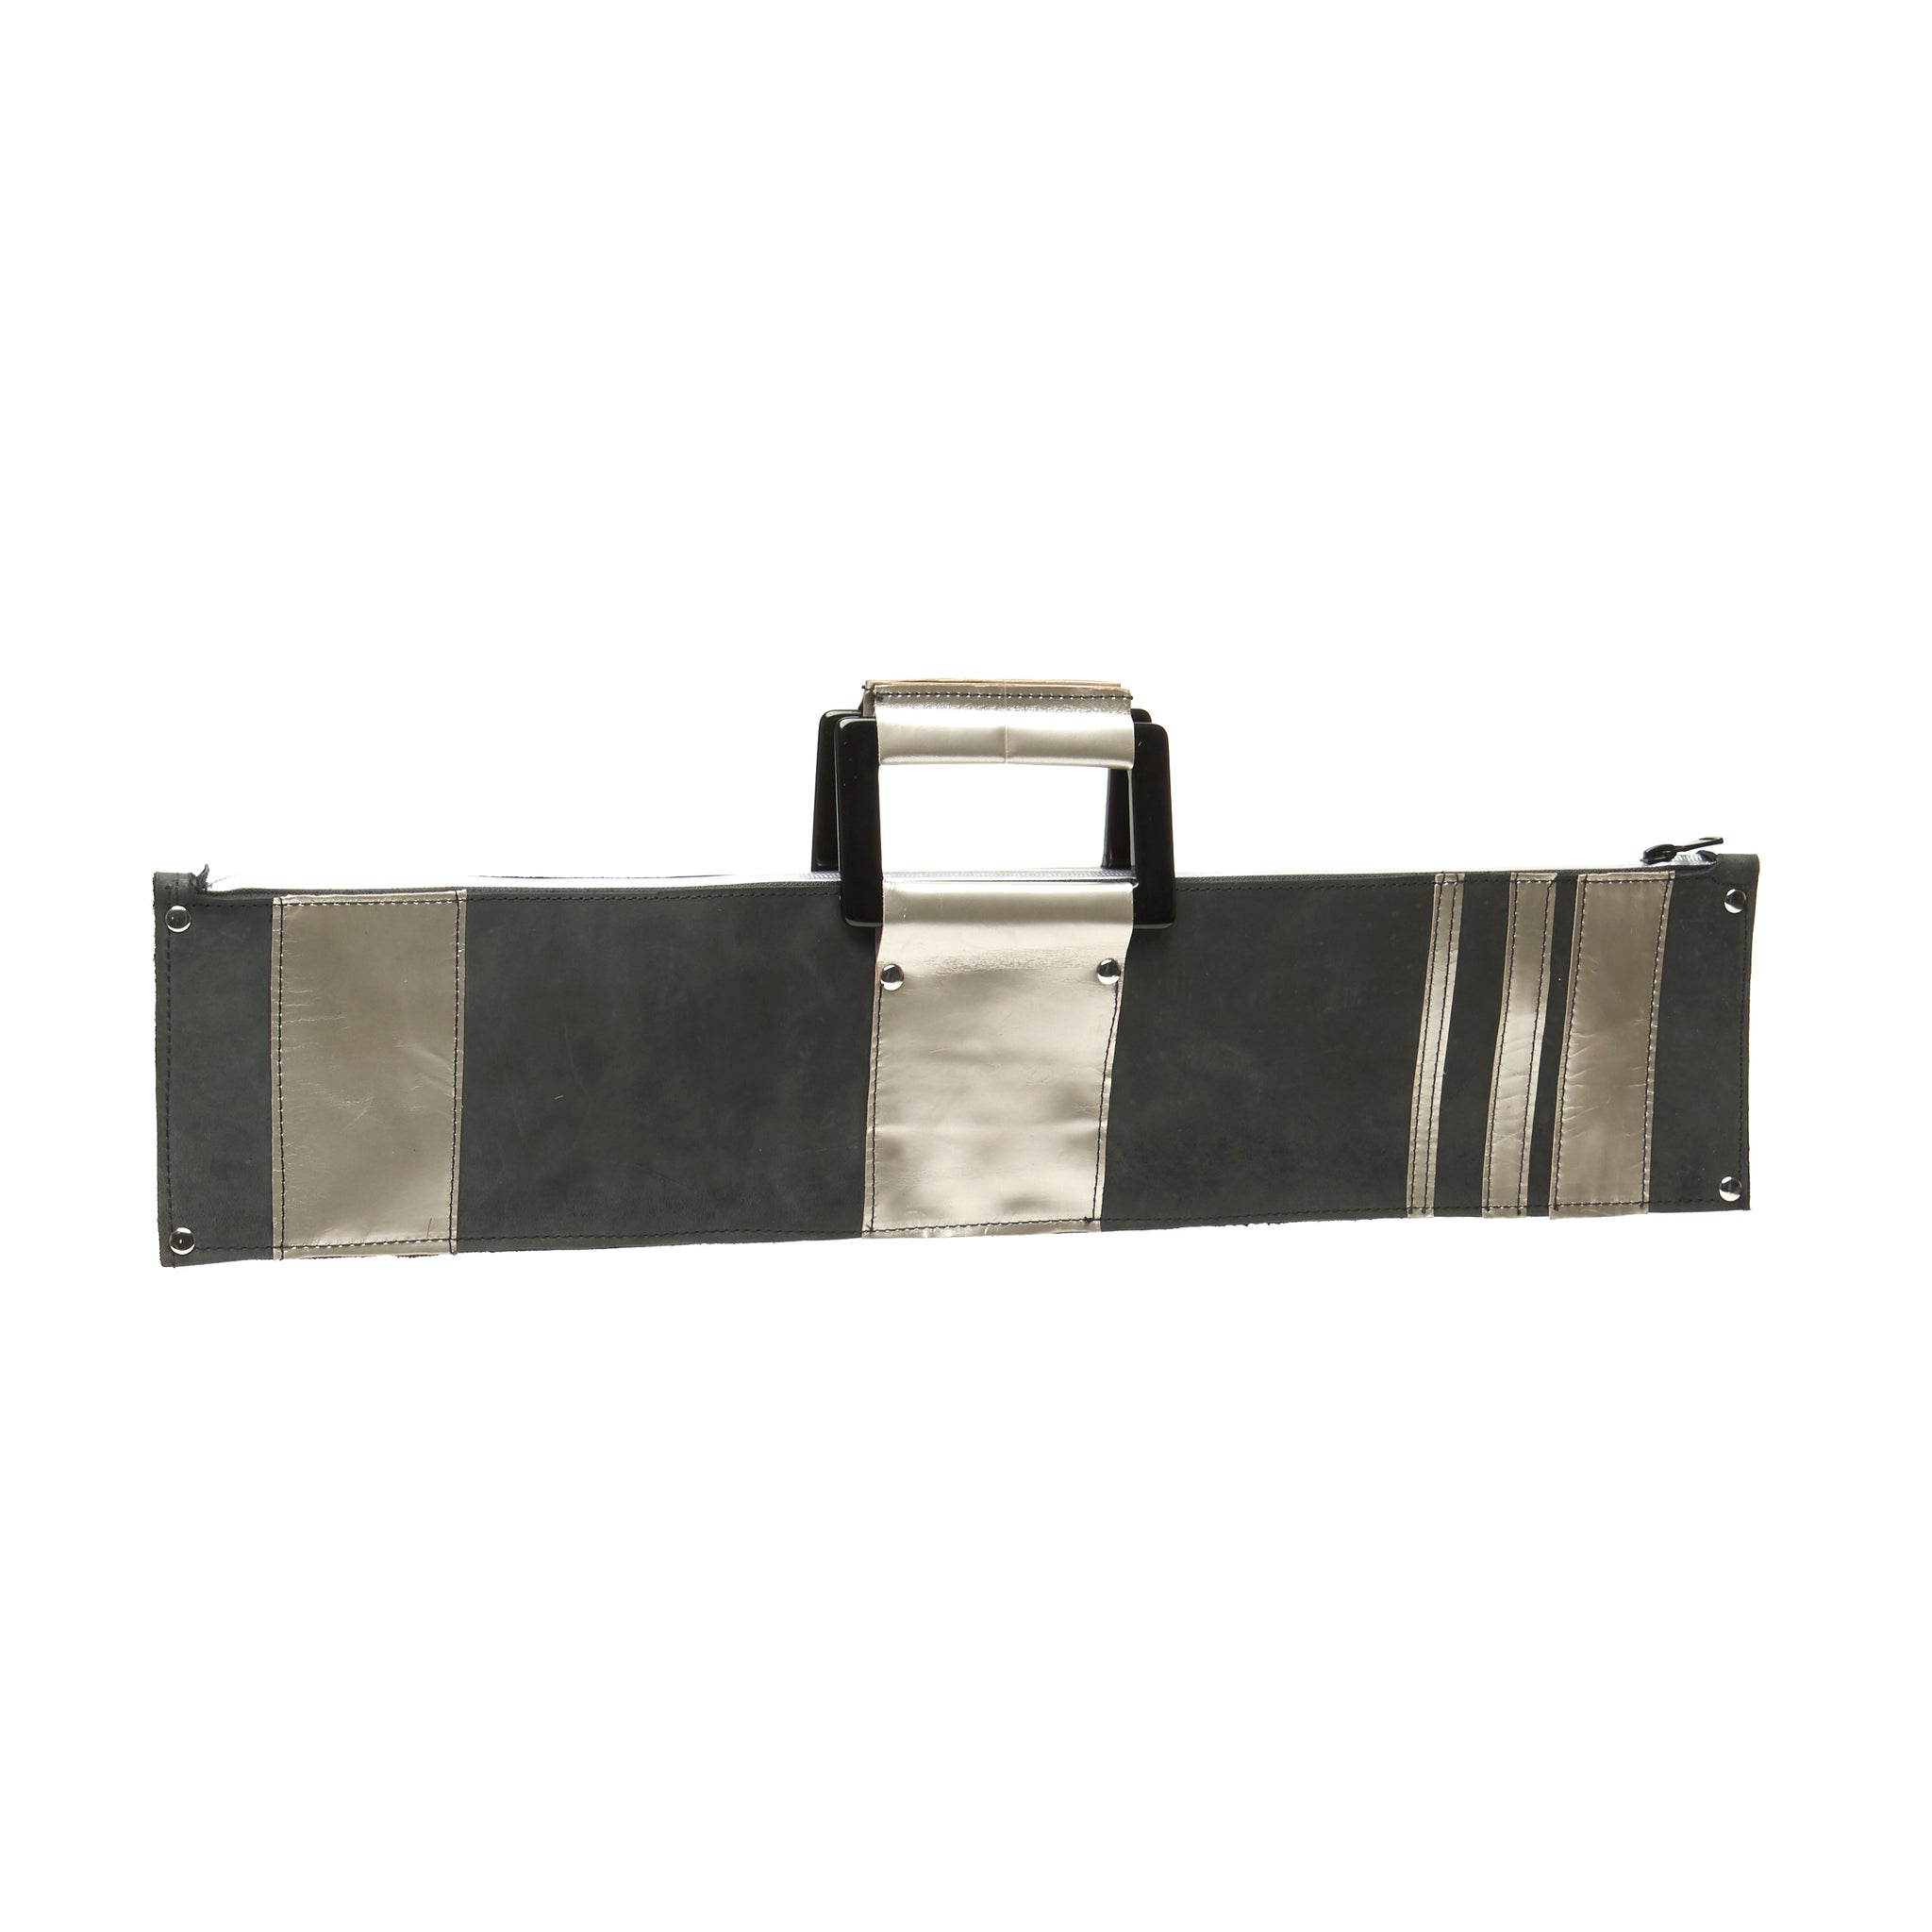 ZIPPERED 3XL MATTE GREY STONE OILED LEATHER CLUTCH WITH SILVER LEATHER ACCENTS AND STRIPES. by nyet jewelry.